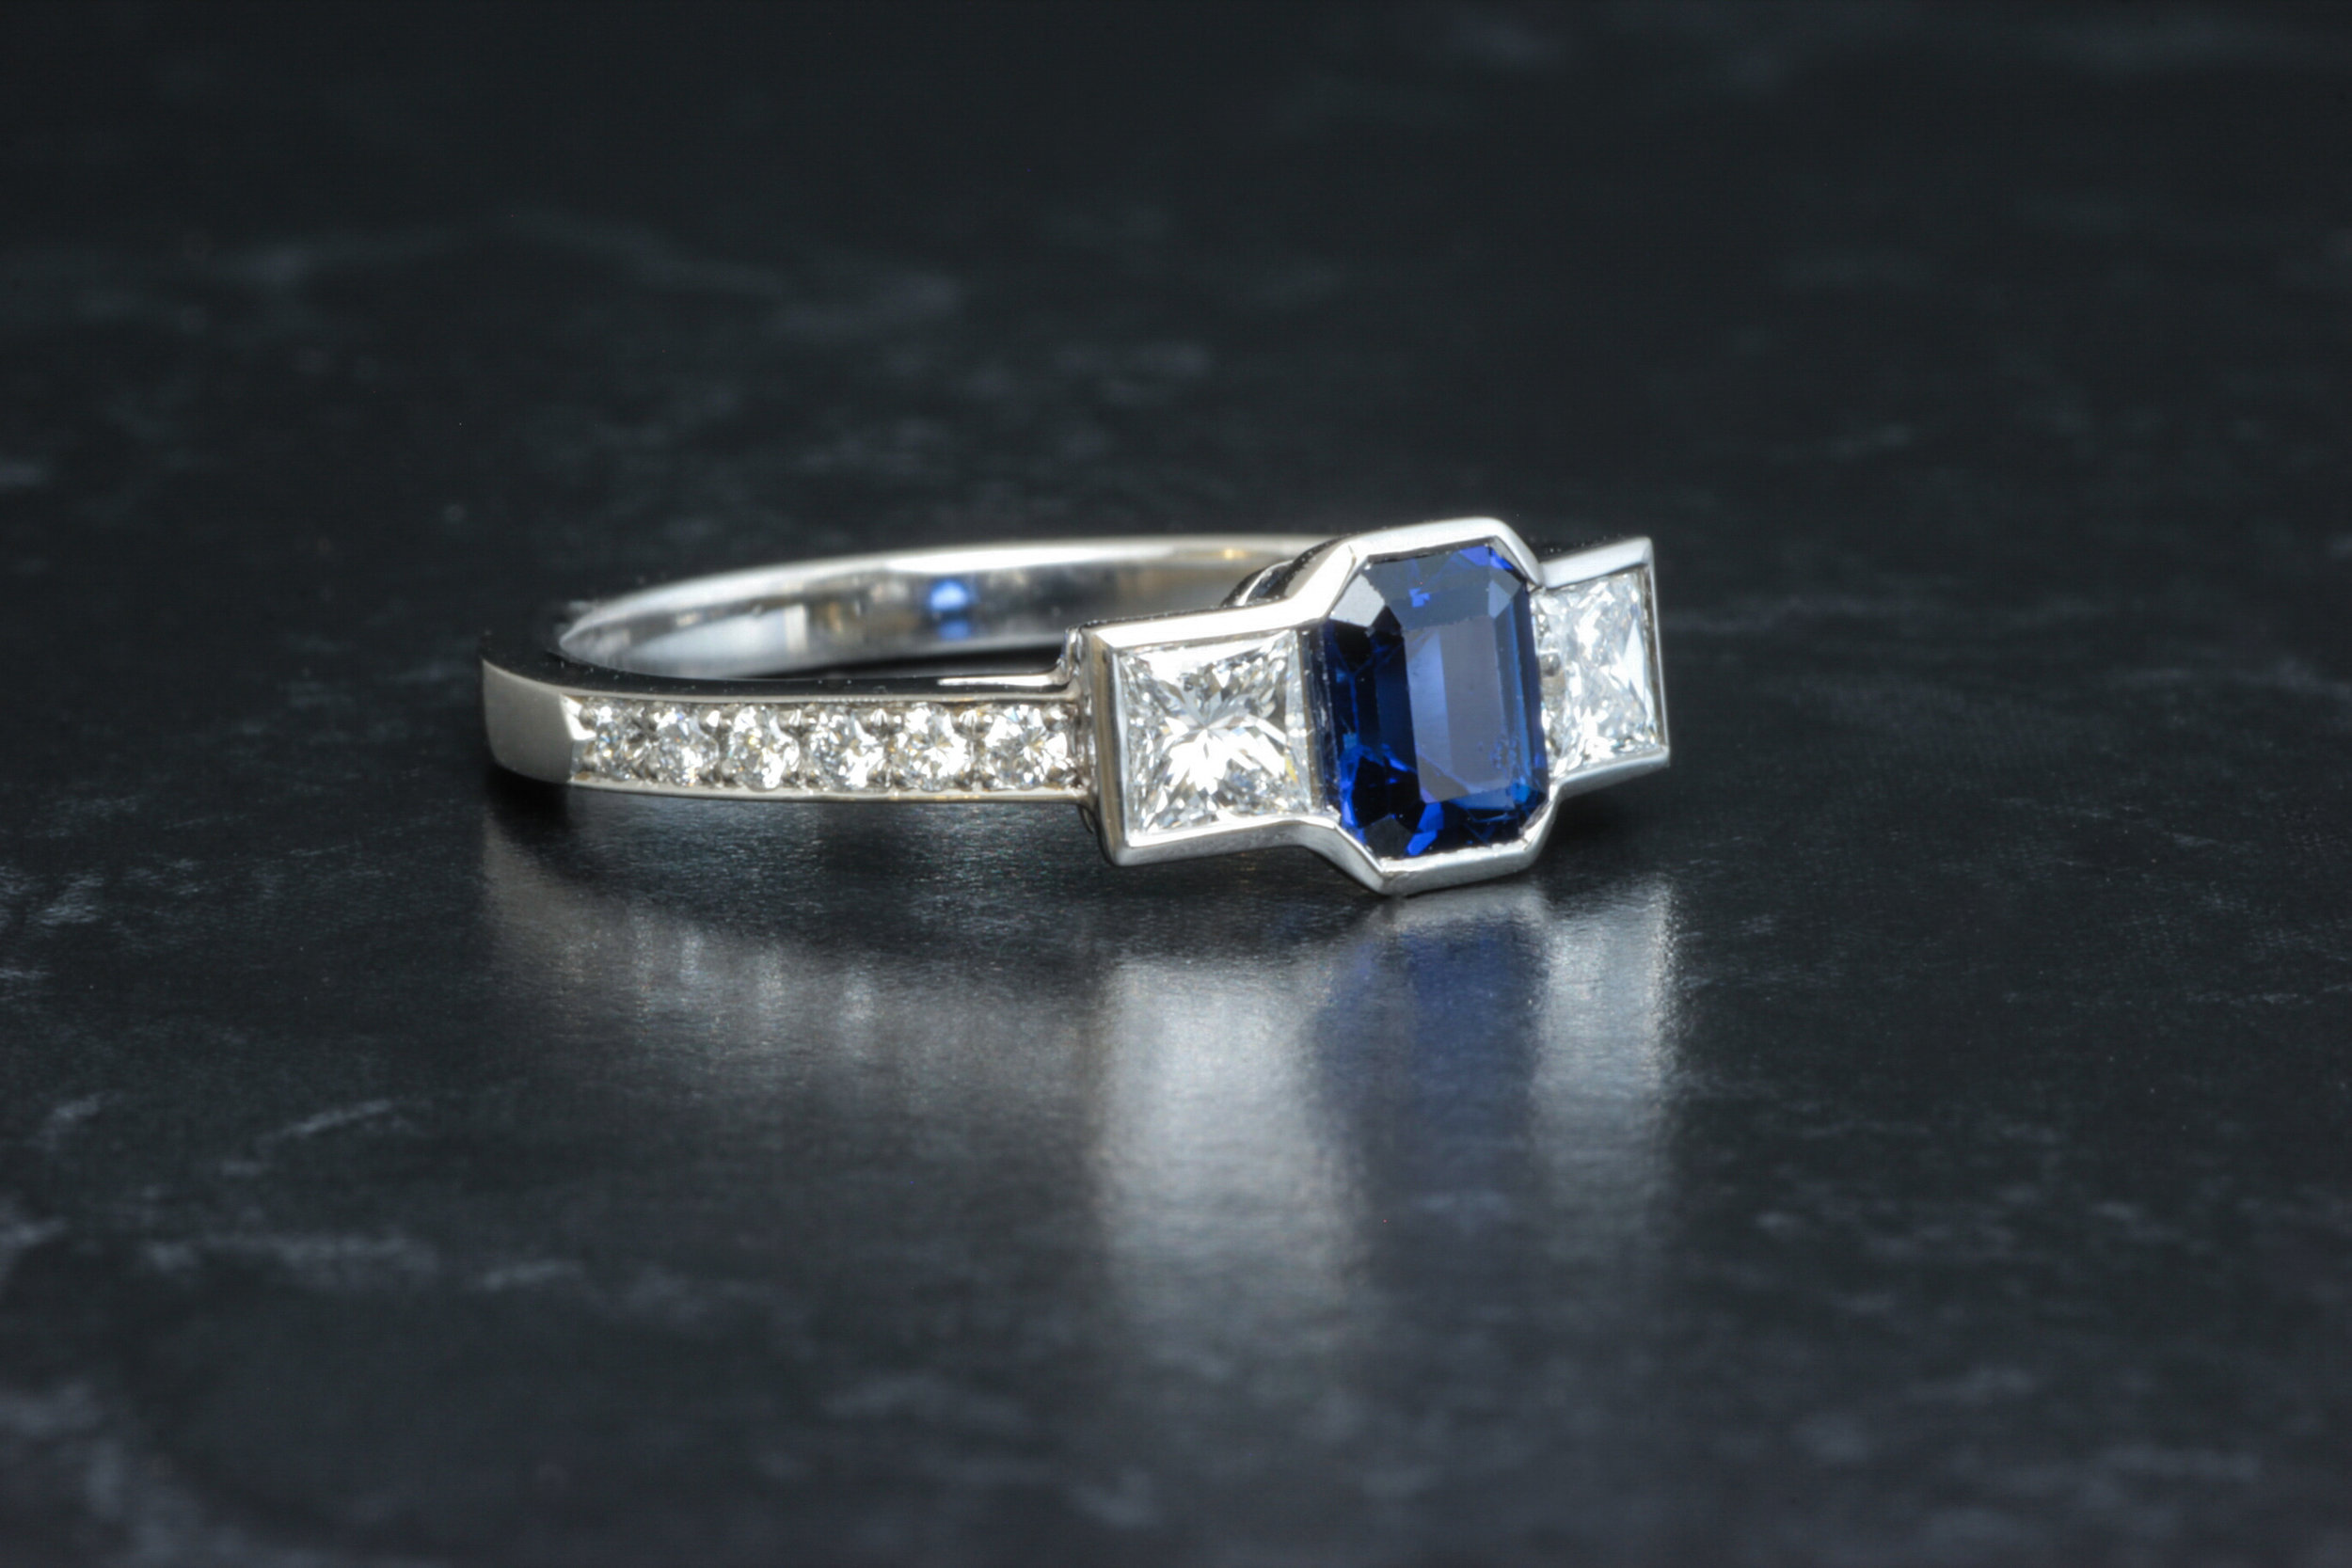 Copy of Octagonal 2.00ct sapphire and princess cut diamond 3 stone ring. made in Chichester, England.